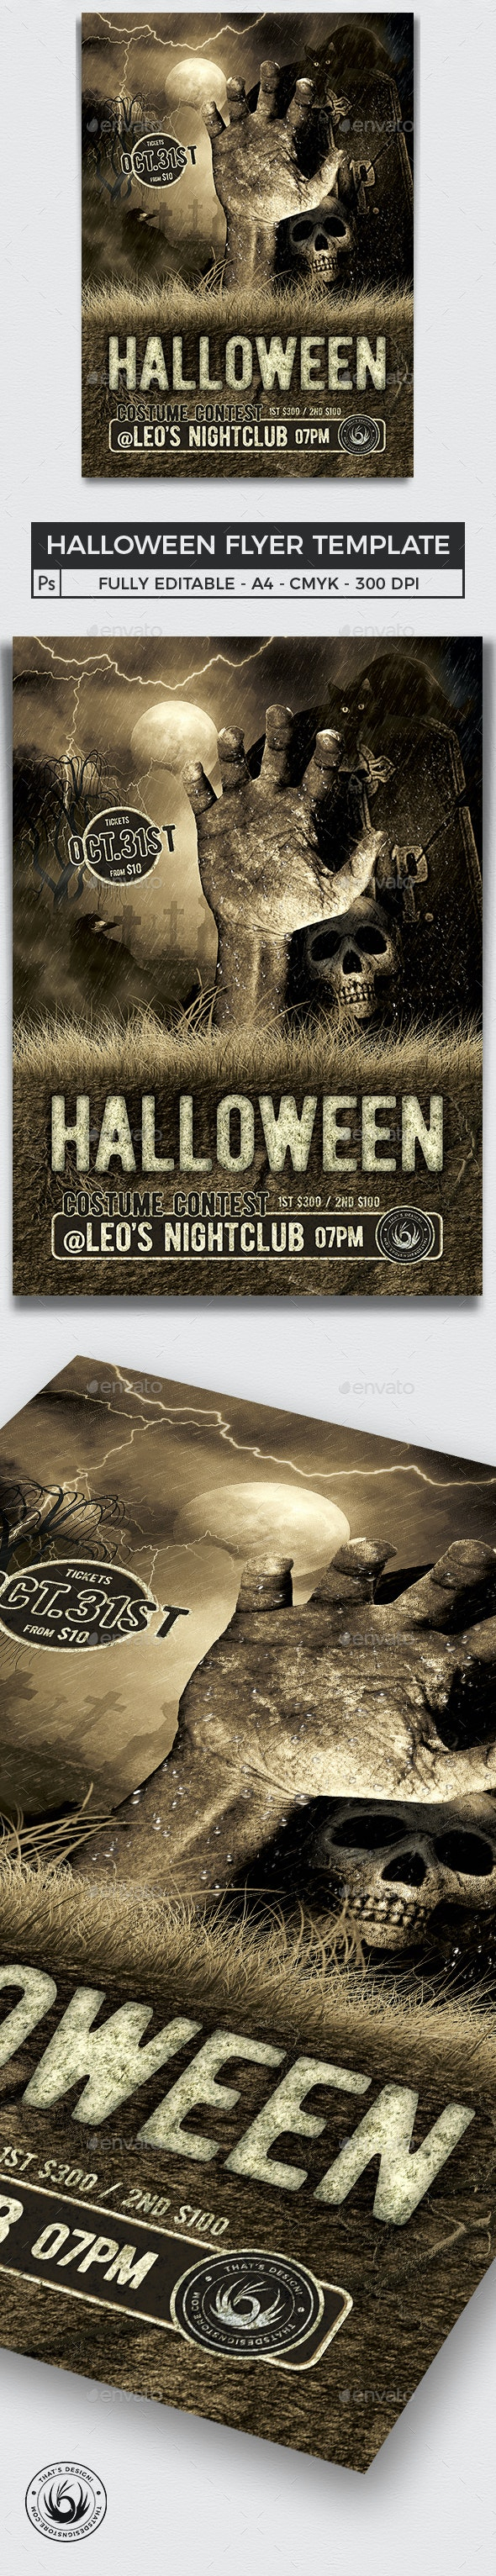 Halloween Flyer Template V2 - Holidays Events